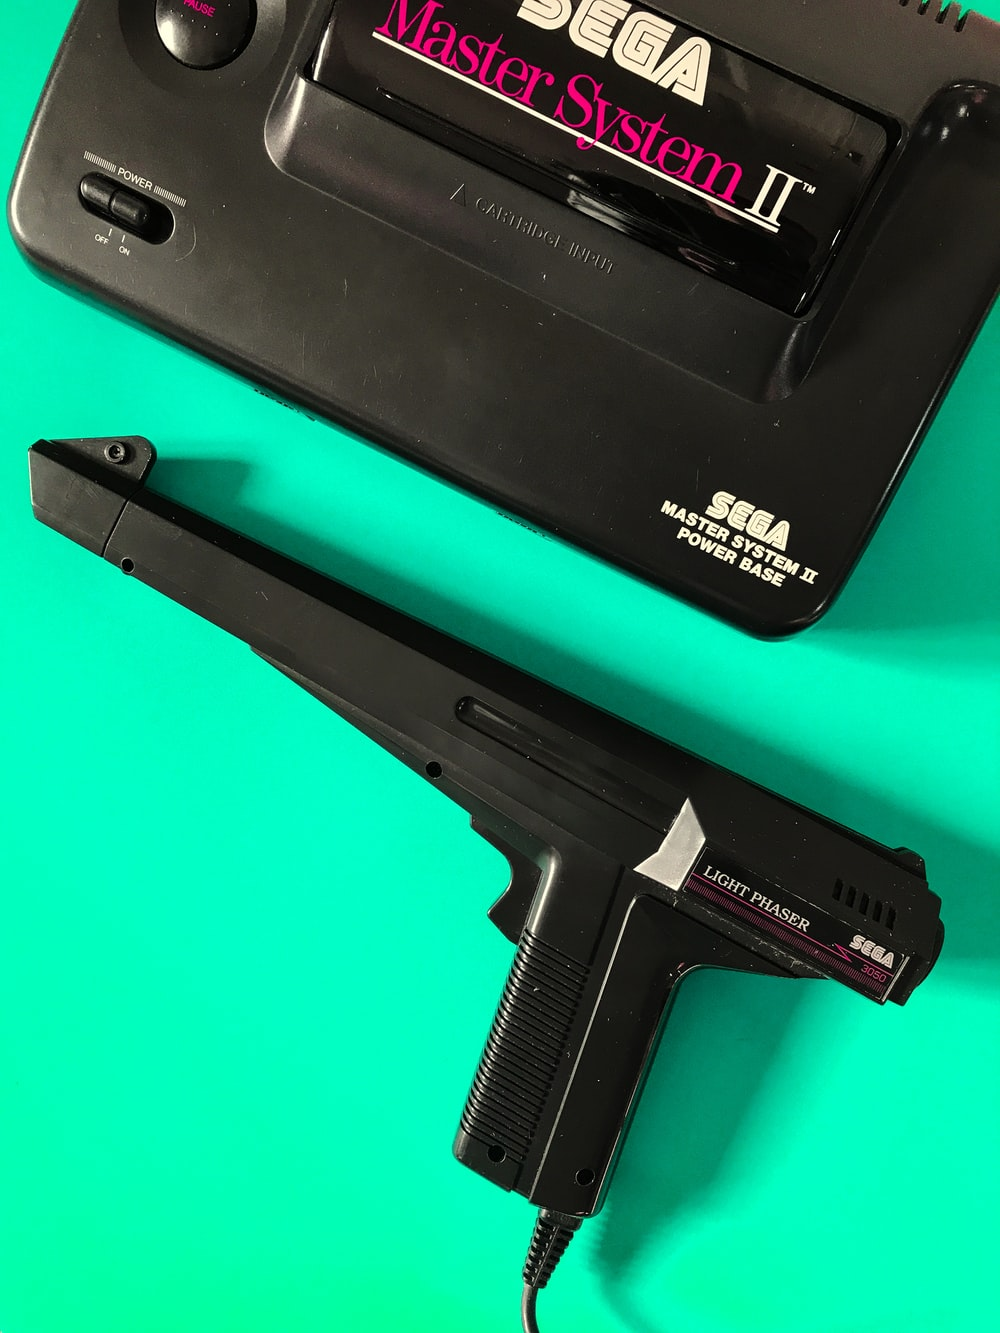 black Sega master system ll console with controller